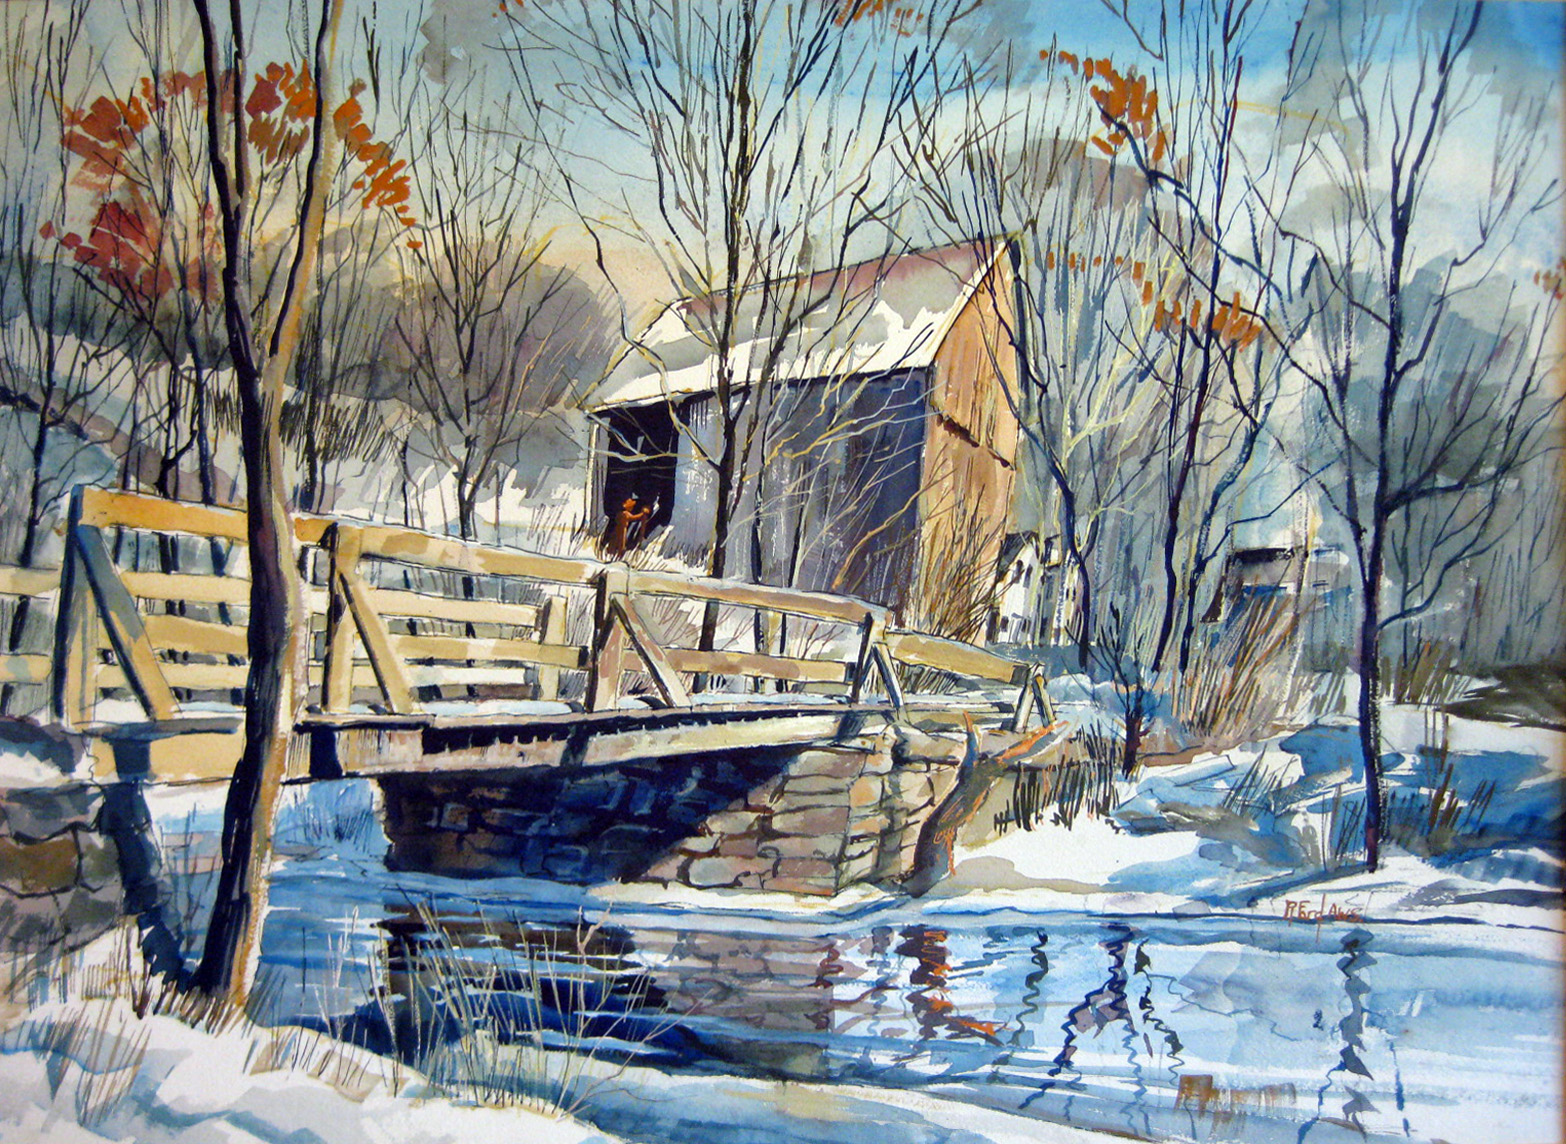 Ford, Ruth VanSickel - Early Winter, Connecticut